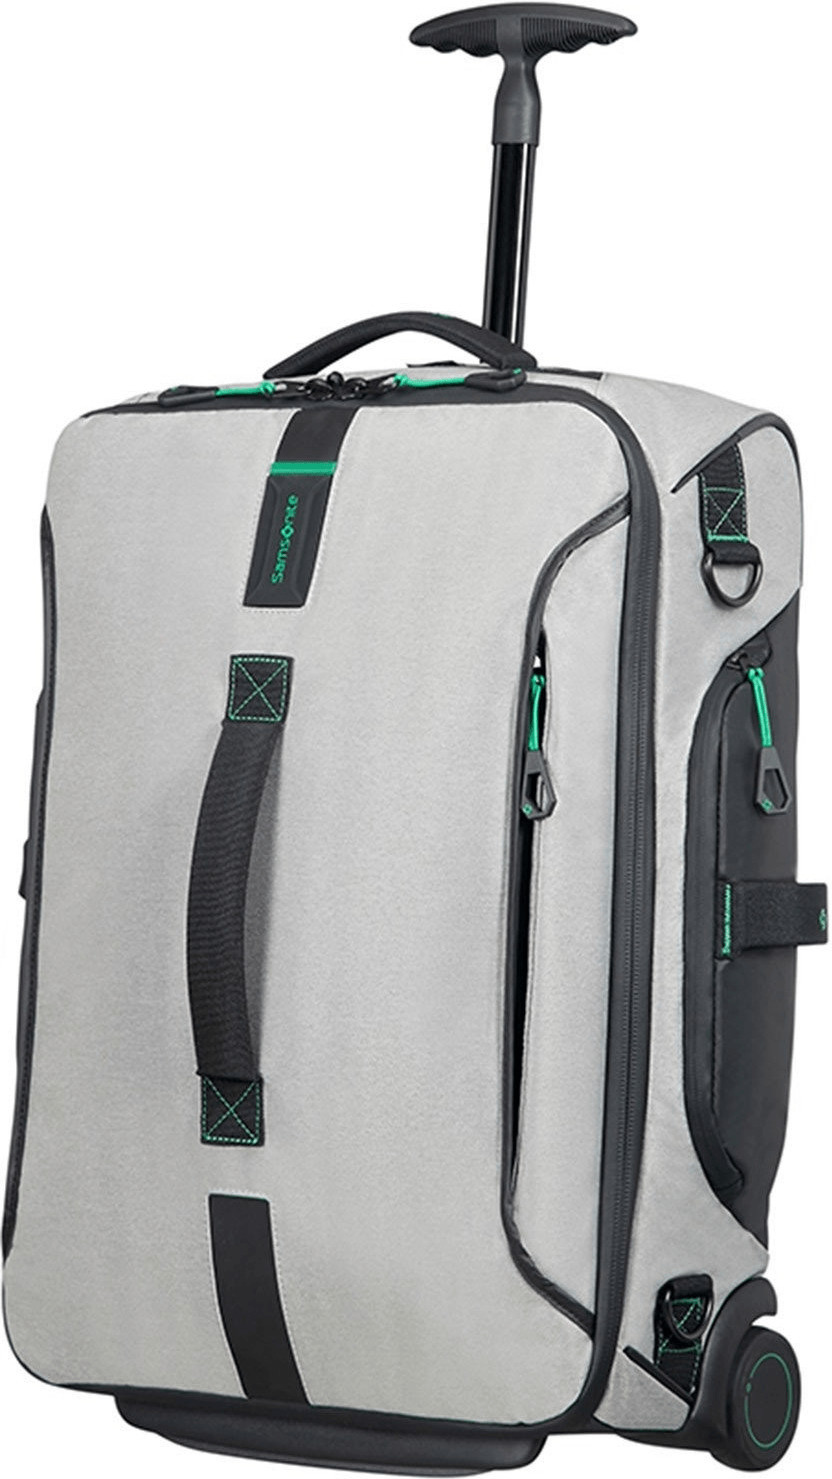 rabatt samsonite paradiver light reisetasche mit rollen 55cm rucksack jeans grey. Black Bedroom Furniture Sets. Home Design Ideas